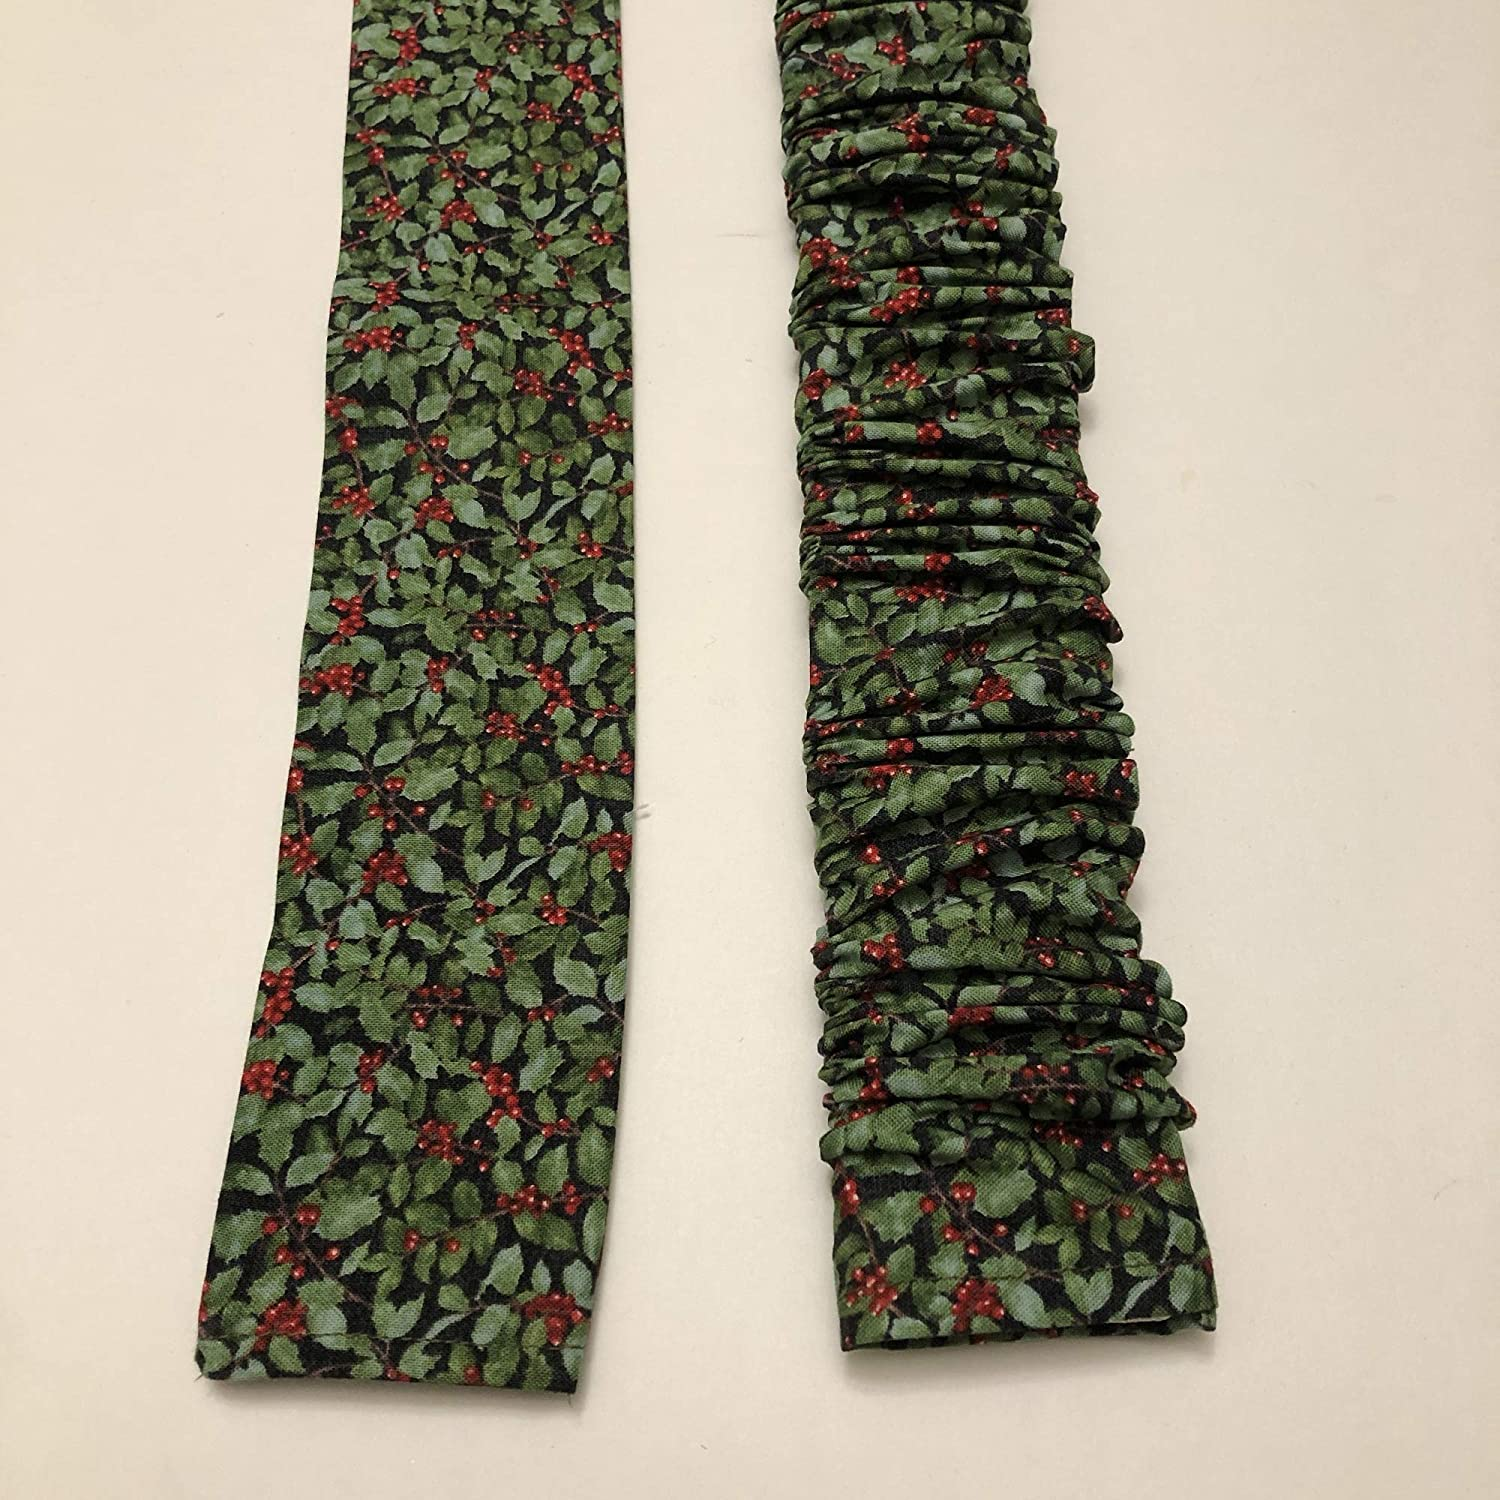 Cord Cover SHORT LENGTH New Orleans Mall Christmas Co High quality new Lamp Holly print Red